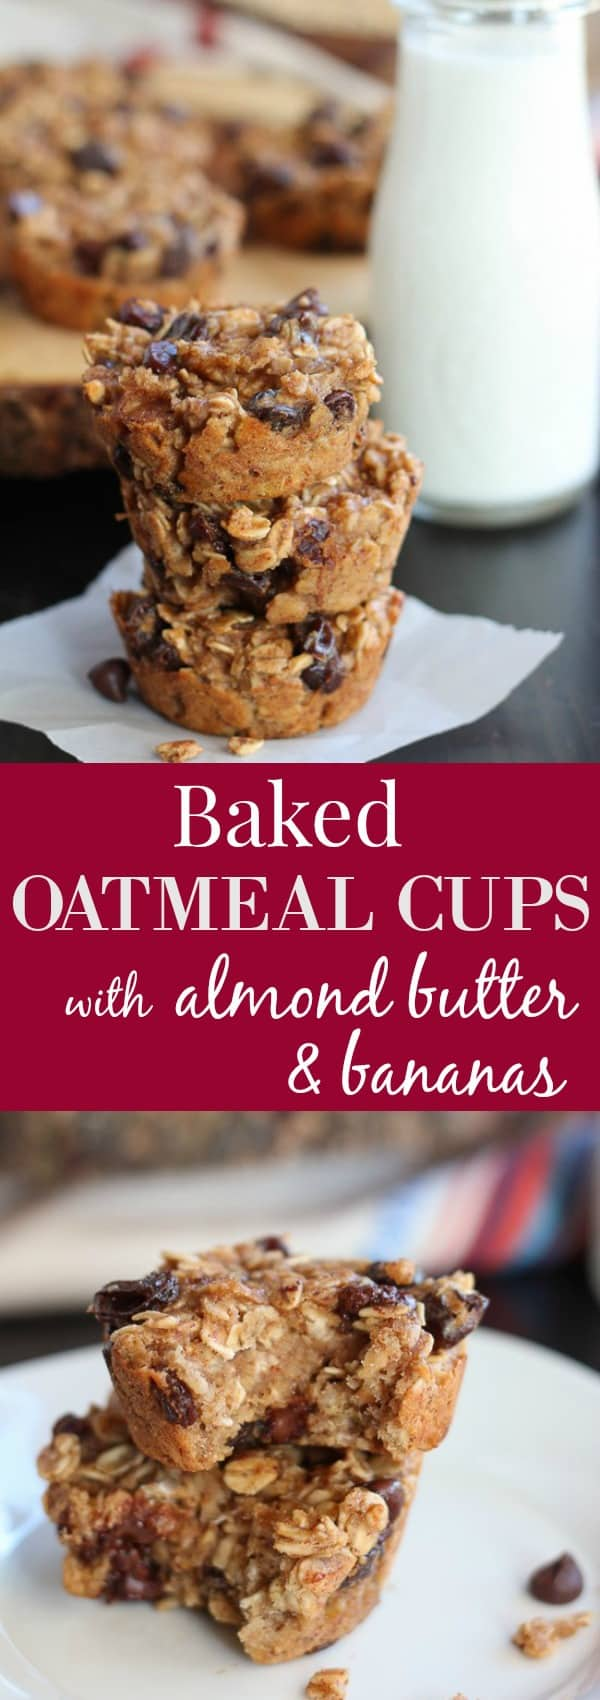 Baked Oatmeal Cups with Almond Butter and Bananas